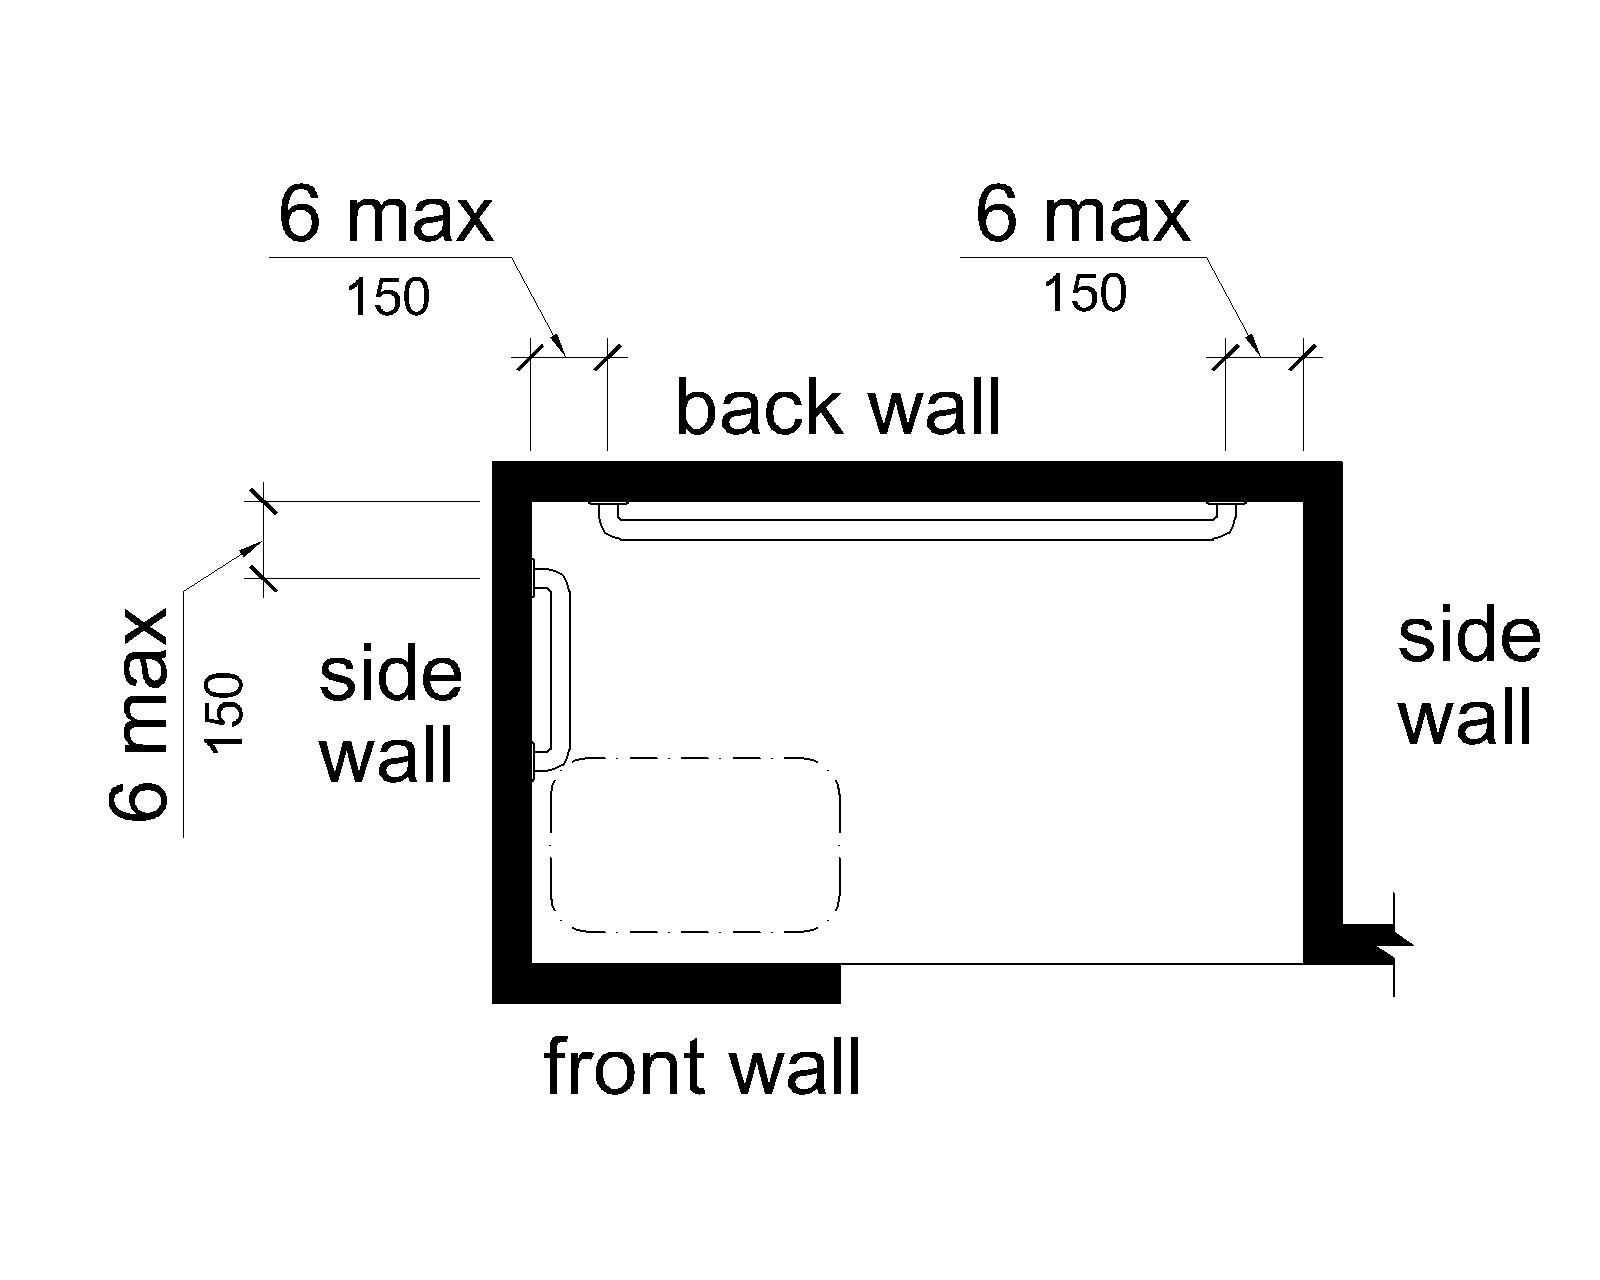 This figure shows an alternate roll-in shower with a seat. A grab bar extends on the wall opposite the seat and is 6 inches (150 mm) maximum from adjacent walls. Another grab bar is mounted on the side wall adjacent to the seat; this grab bar does not extend over the seat and is 6 inches (150 mm) maximum from the back wall.